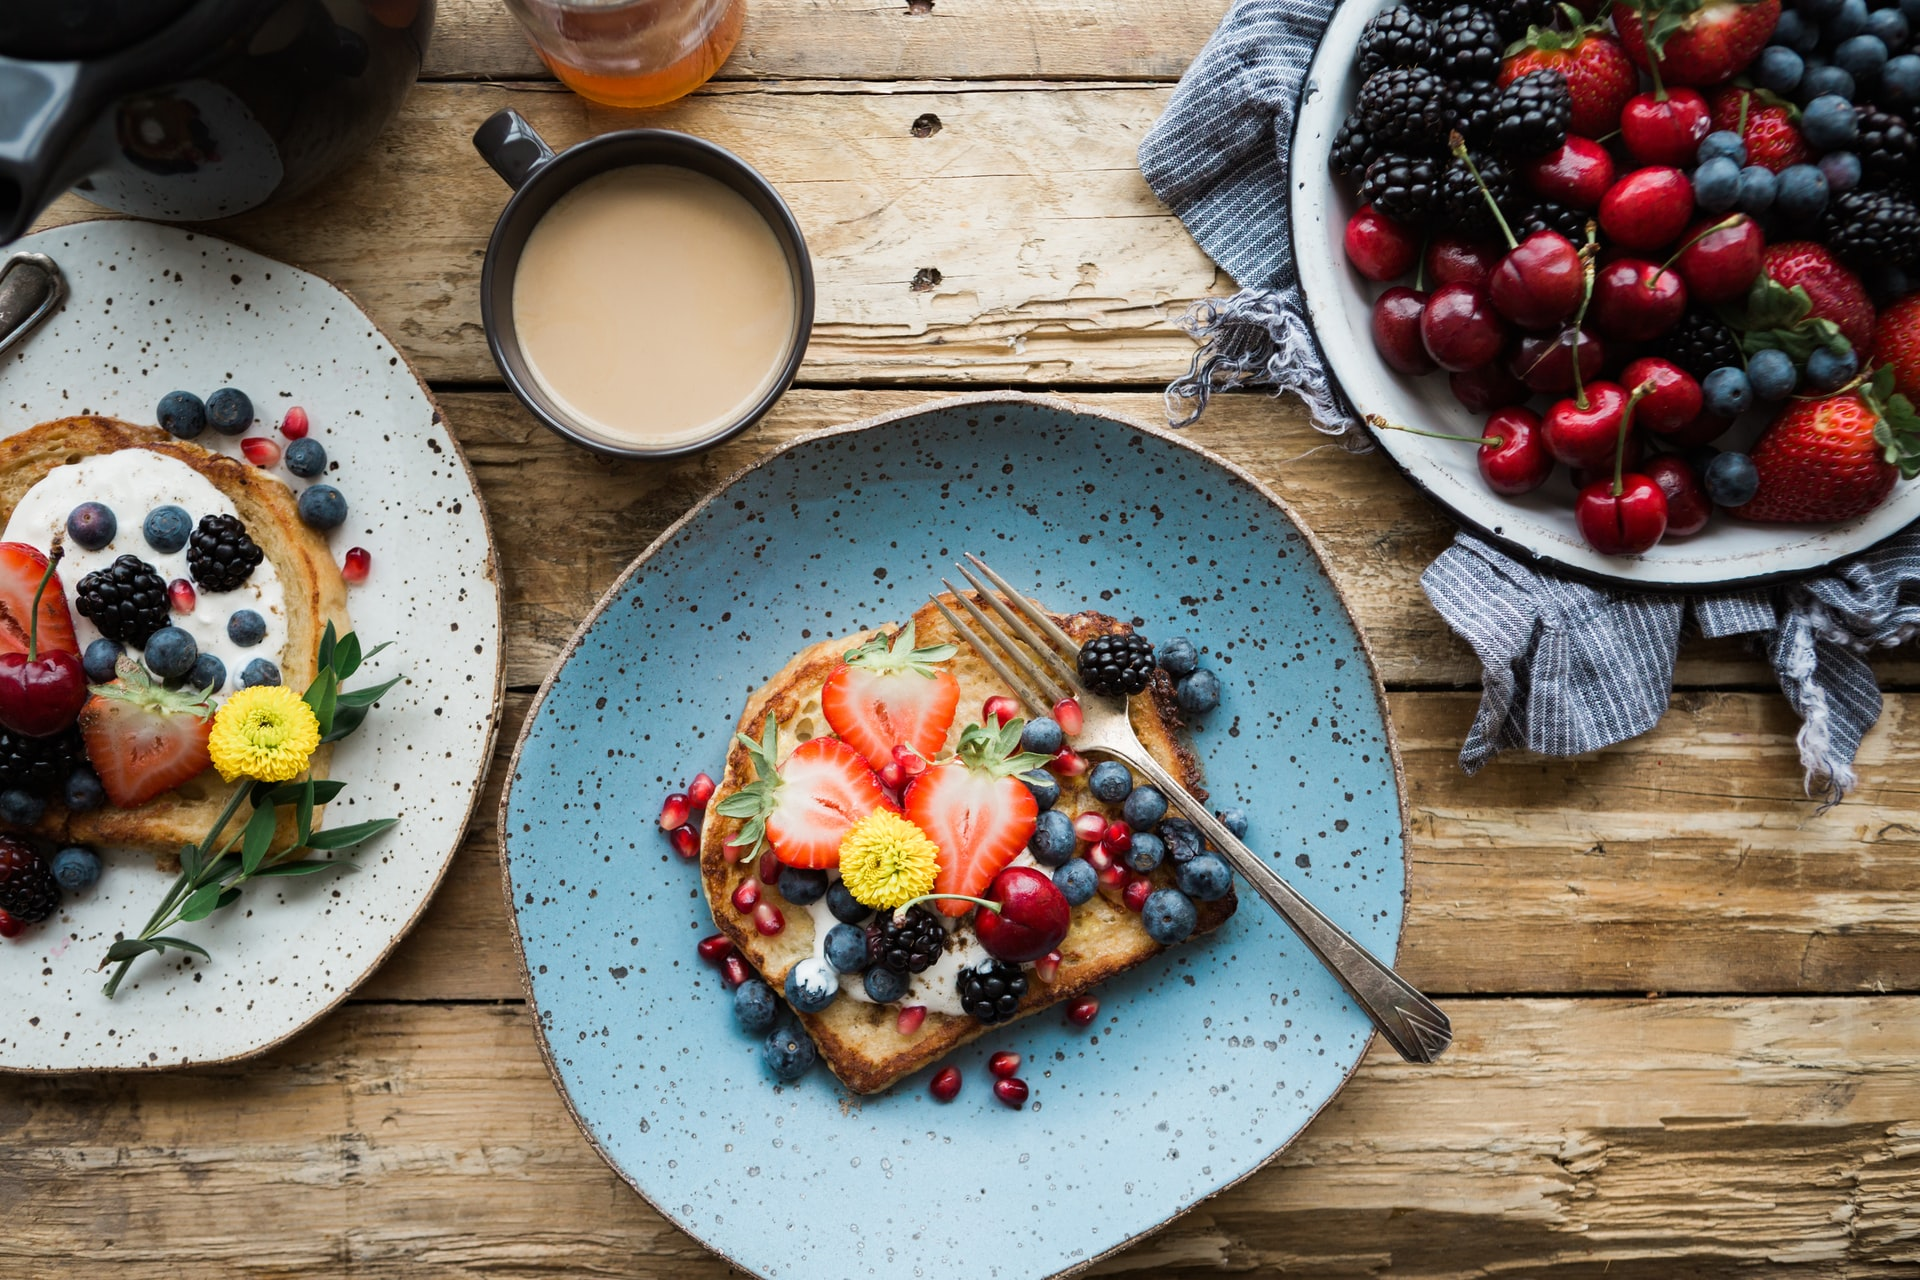 Have Brunch This Weekend at The Partisan